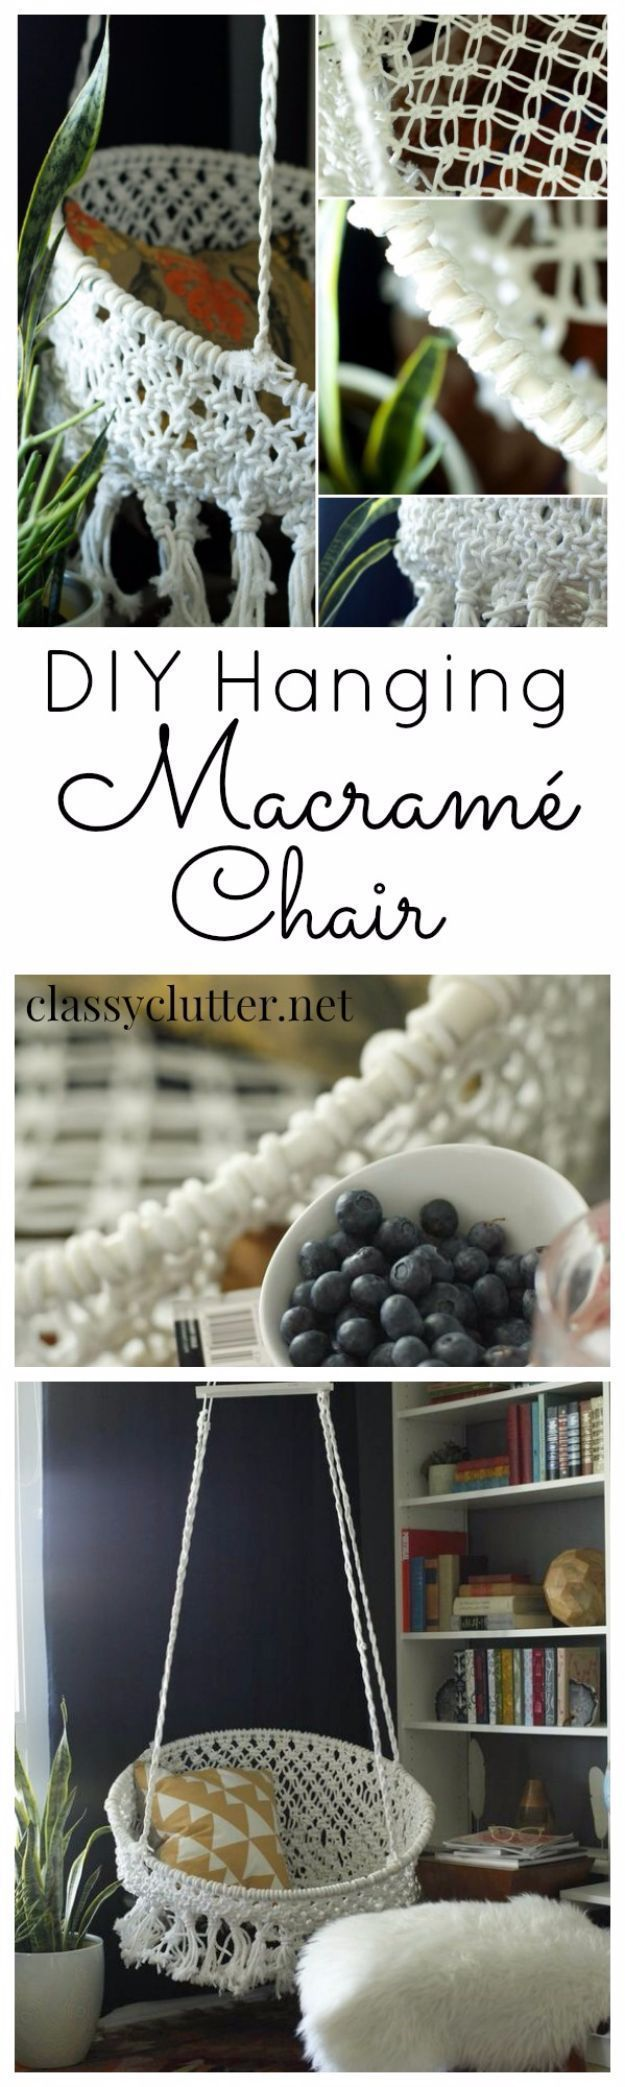 DIY Teen Room Decor Ideas for Girls | DIY Hanging Macrame Chair | Cool Bedroom Decor, Wall Art & Signs, Crafts, Bedding, Fun Do It Yourself Projects and Room Ideas for Small Spaces http://diyprojectsforteens.com/diy-teen-bedroom-ideas-girls